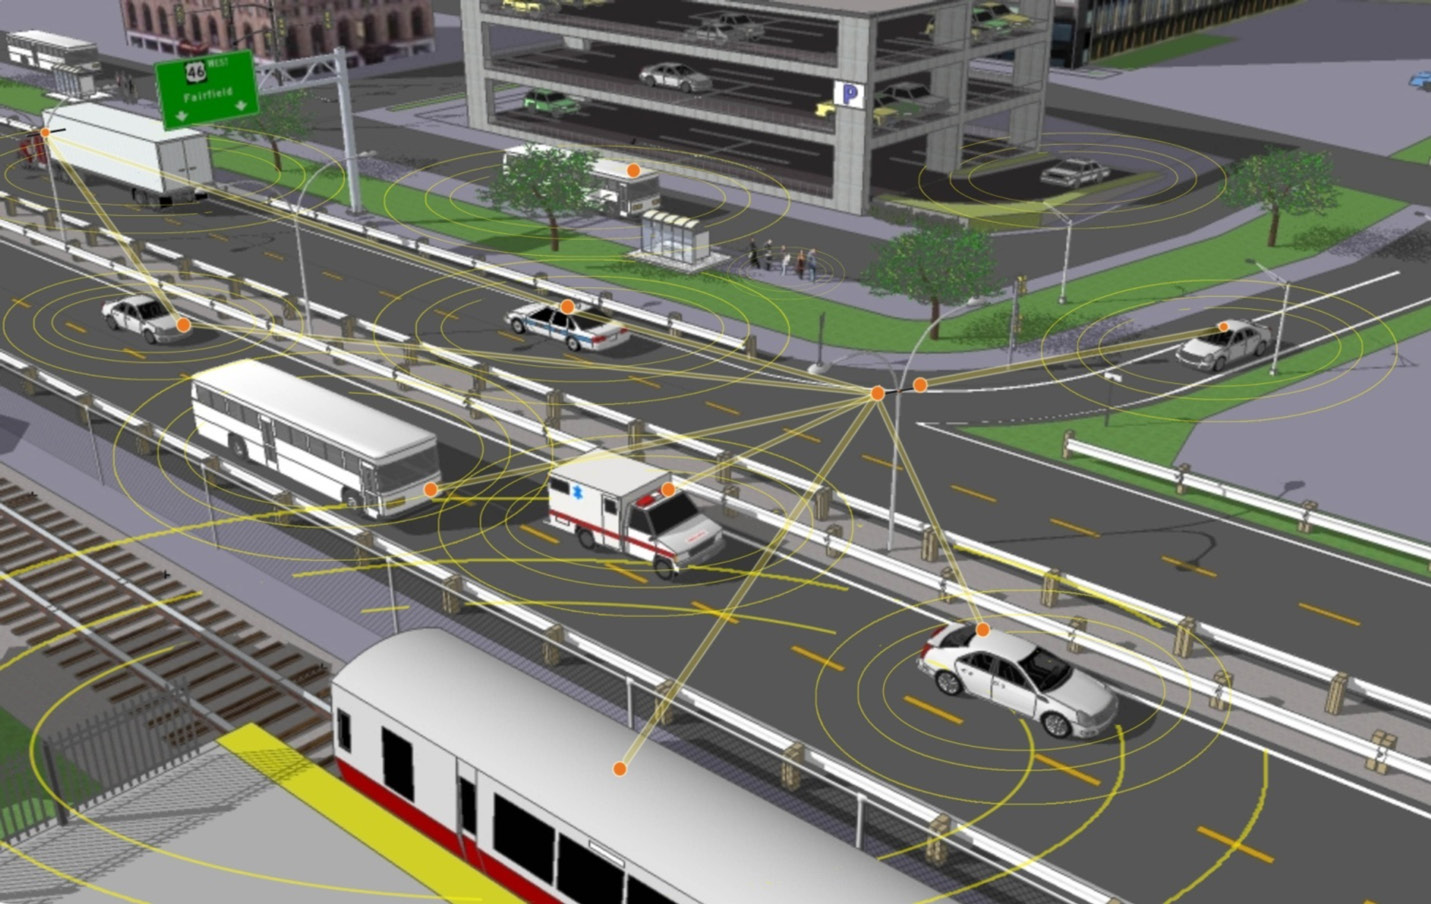 3. The Connected Vehicle Safety Pilot Program a) Introduction The Connected Vehicle Safety Pilot Program is part of a major scientific research program run jointly by the DOT and its research and